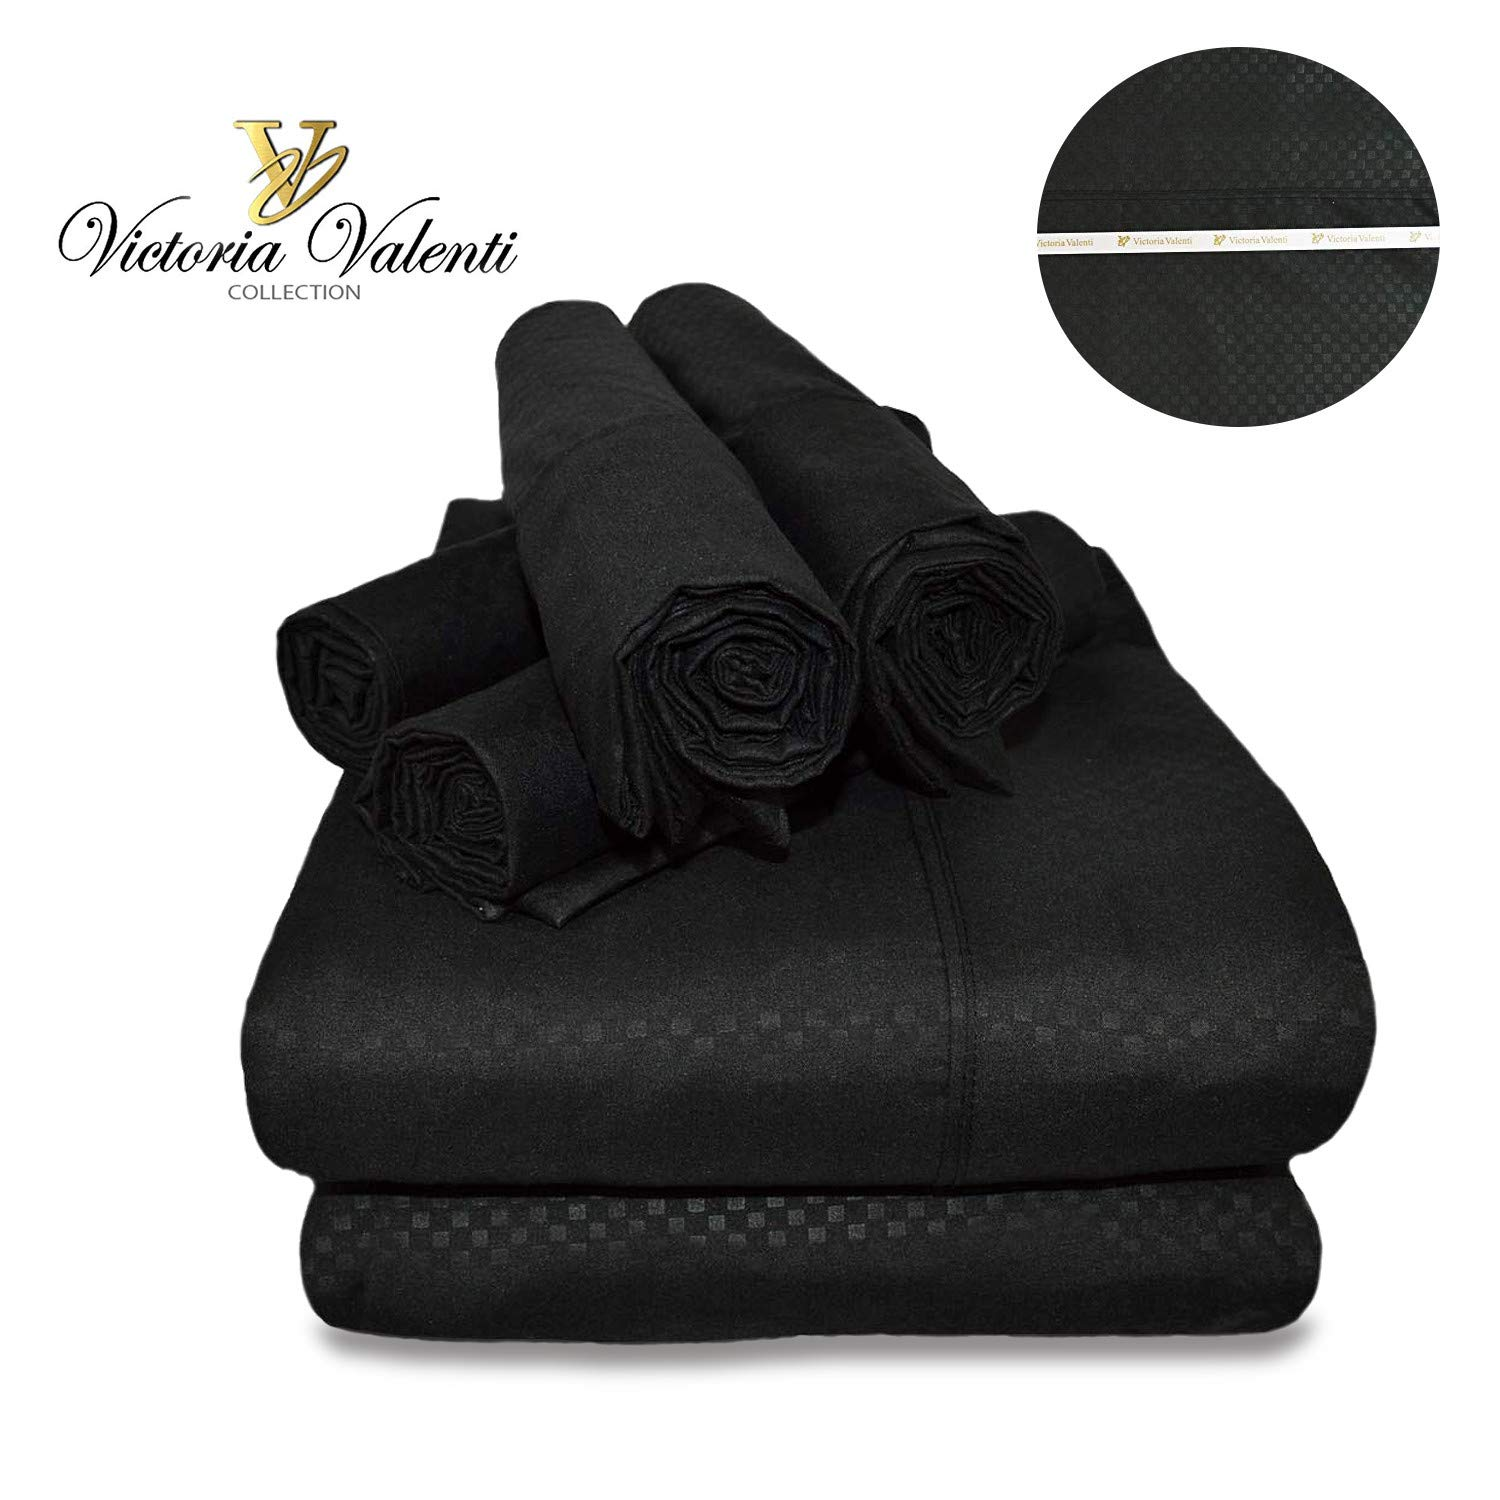 Victoria Valenti Embossed Sheet Set with 4 Pillow Cases, Double Brushed and Ultra Soft with Deep Pockets for Extra Deep Mattress, Microfiber, Hypoallergenic King Black